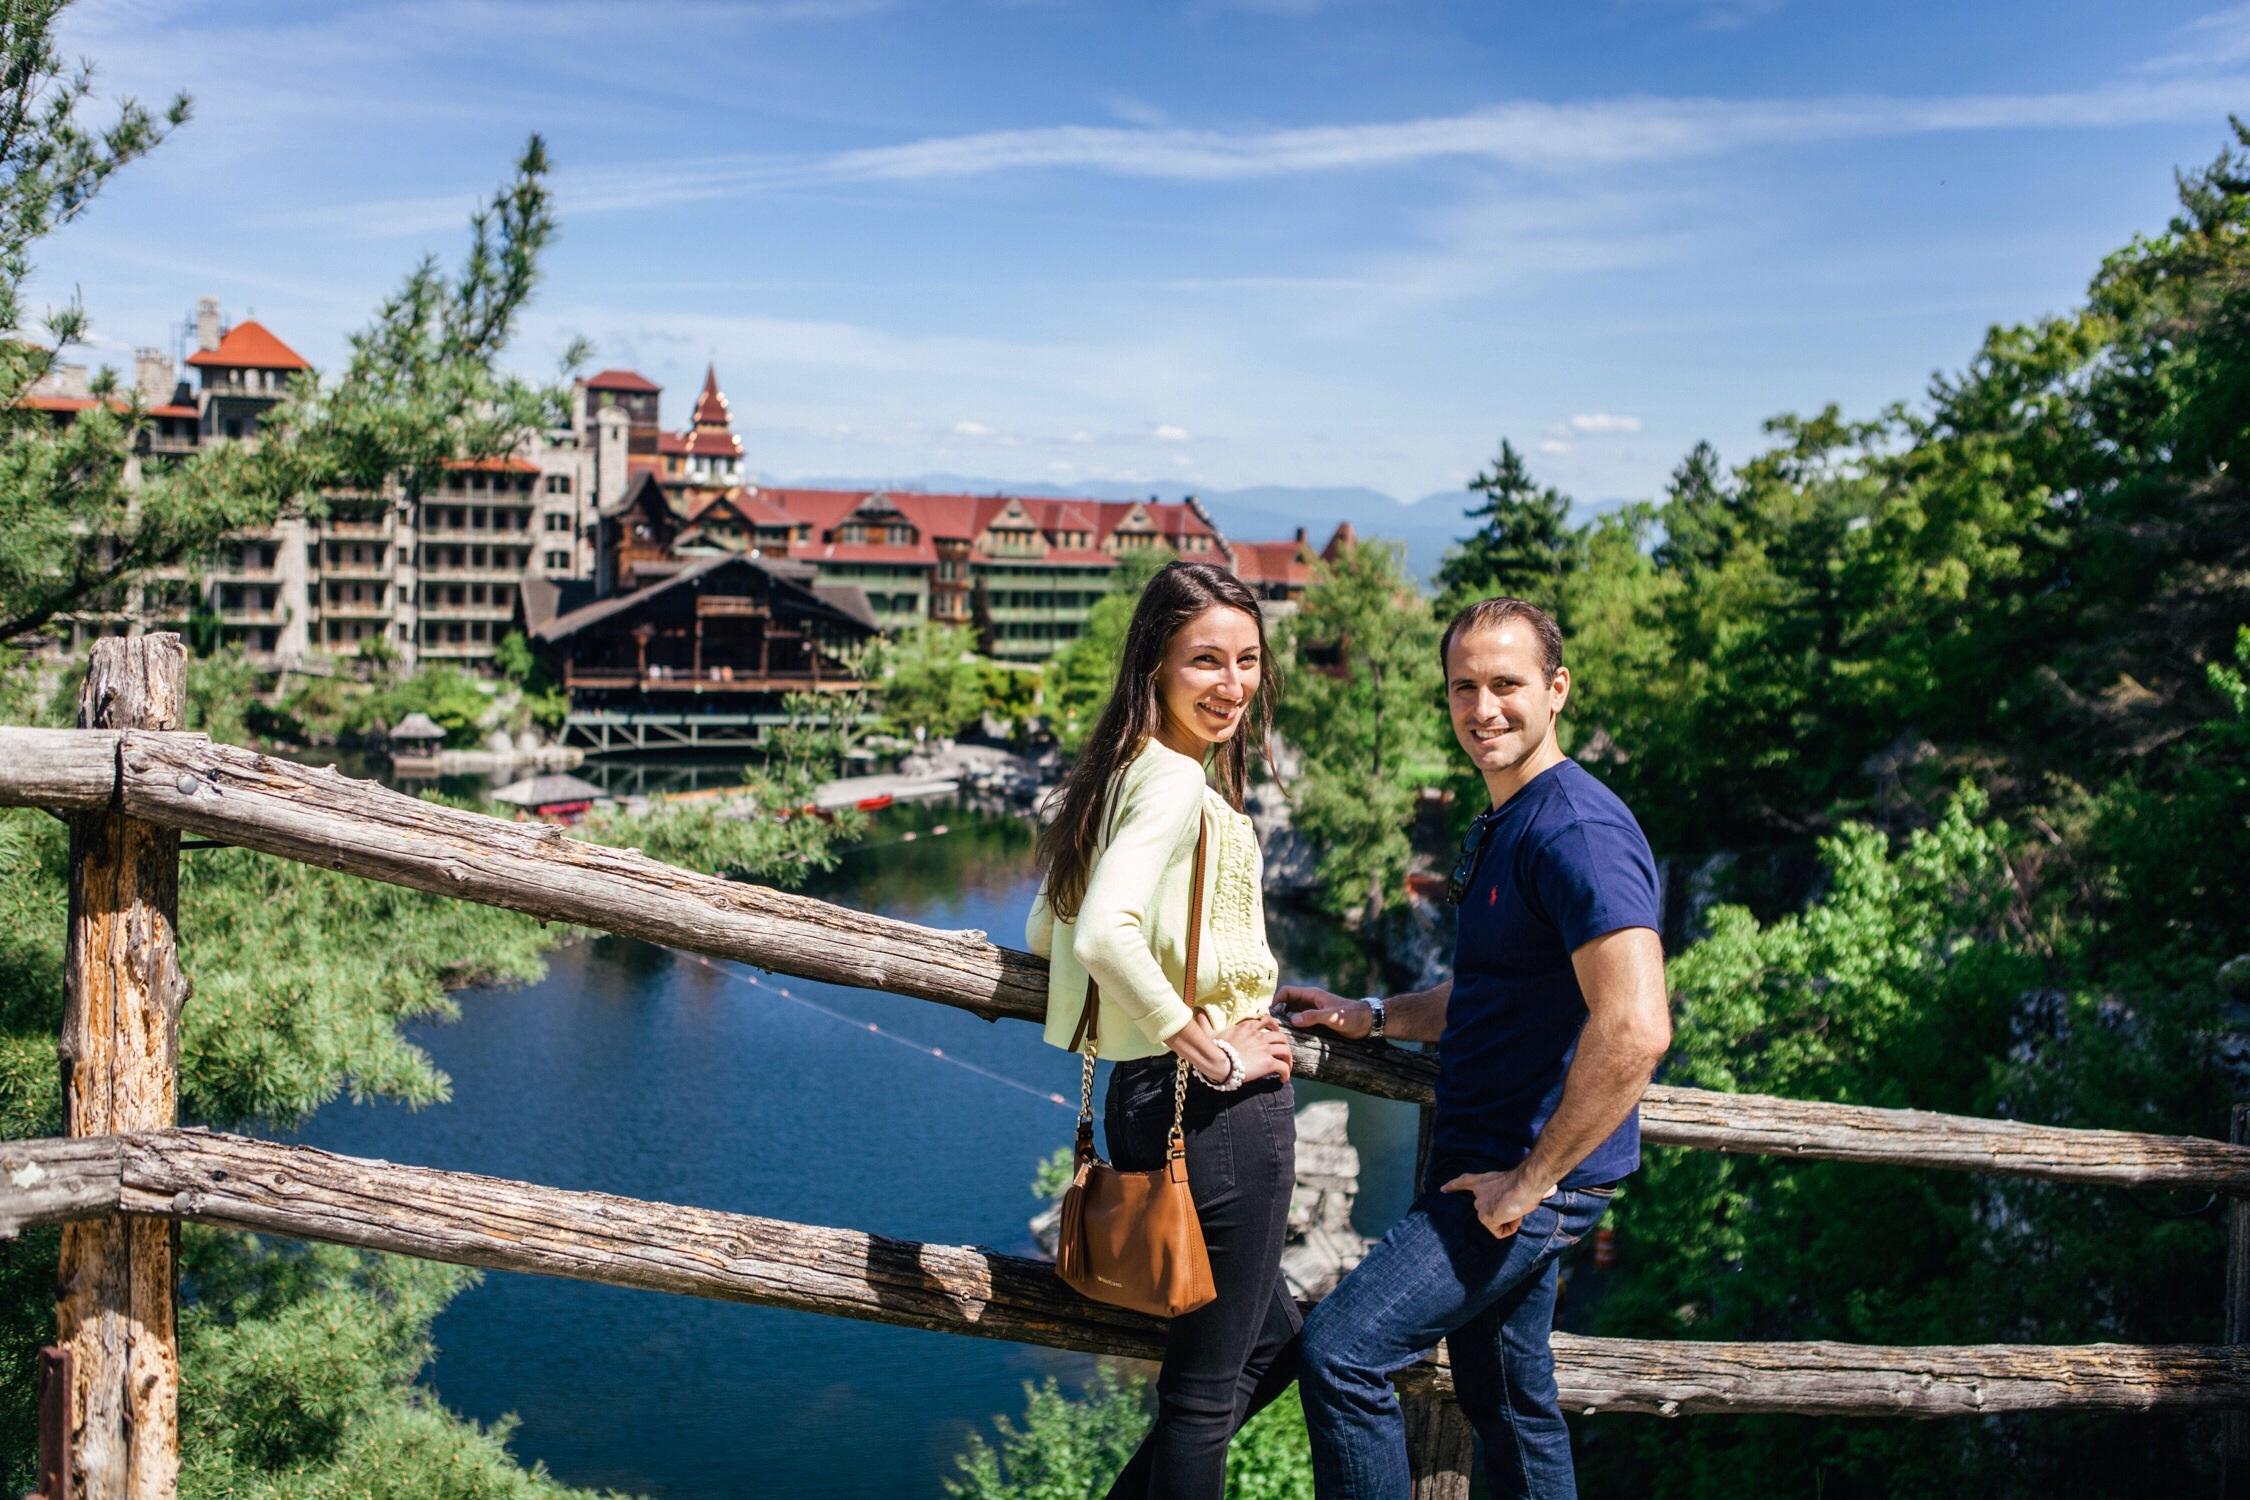 Before the proposal, on our way to the summit. Posing for a photo with Rossella, opposite the Mohonk Mountain House, New Paltz, NY.